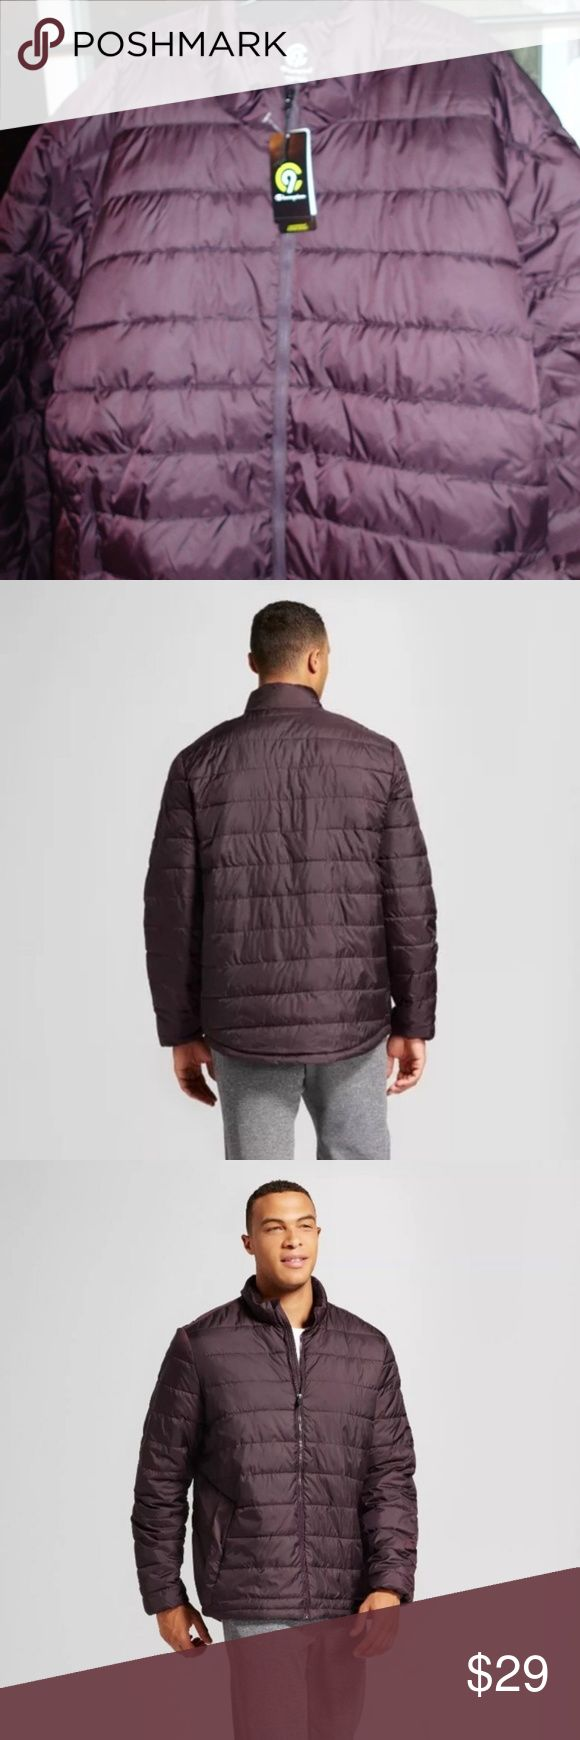 Mens Puffer Jacket NWT c9 Champion Mens Puffer Lightweight Jacket NWT Some ppl say it Purple in color others say its brown so I put both... It's new and still wrapped in plastic. Champion Jackets & Coats Puffers